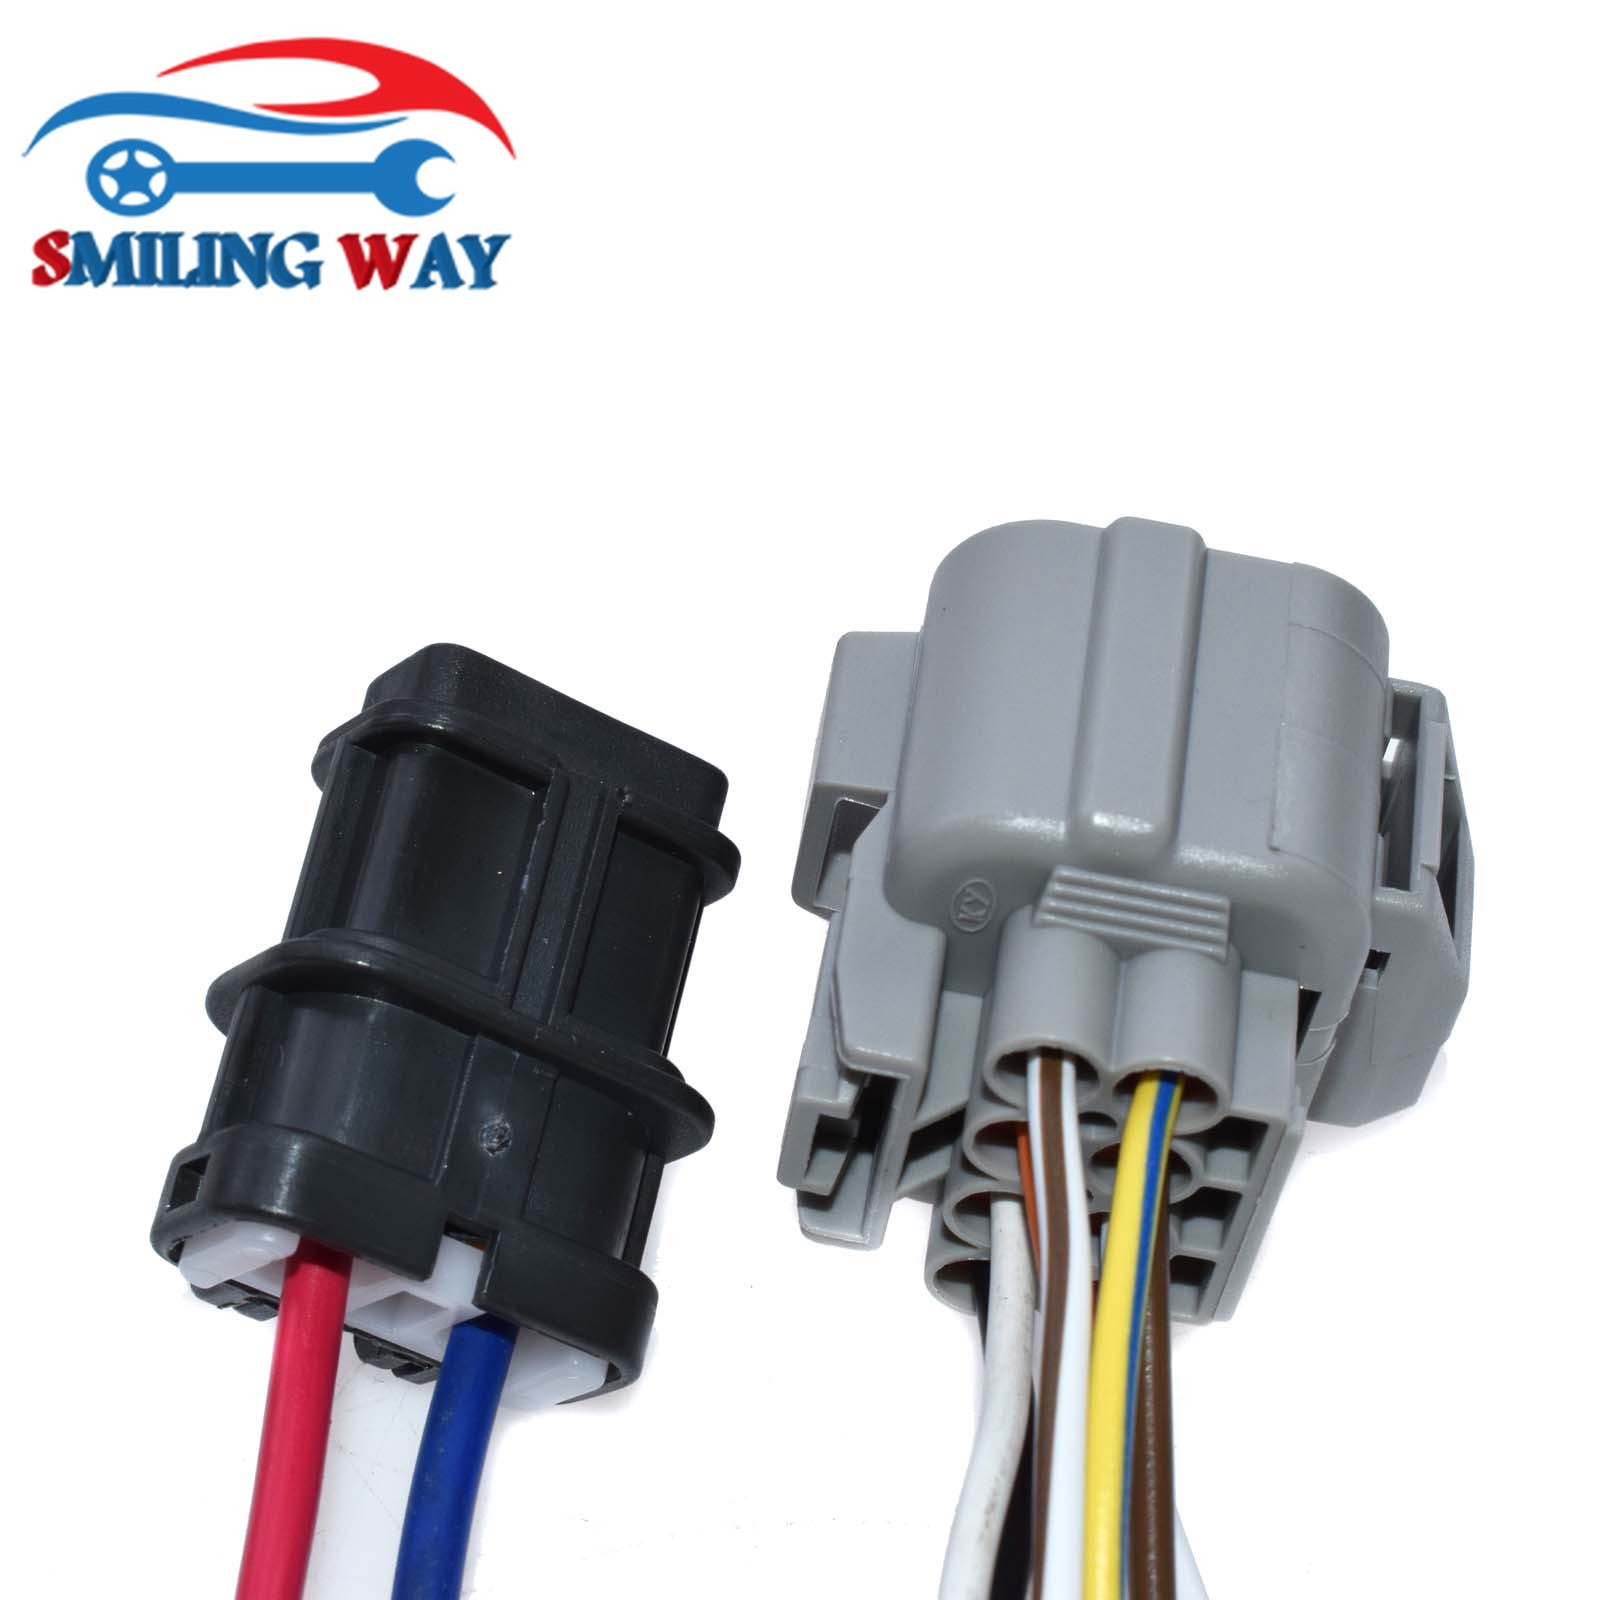 hight resolution of obd0 to obd1 ecu distributor adaptor connector wire harness cable for honda crx civic prelude acura integra b17 b16 b18 b20 in distributors parts from